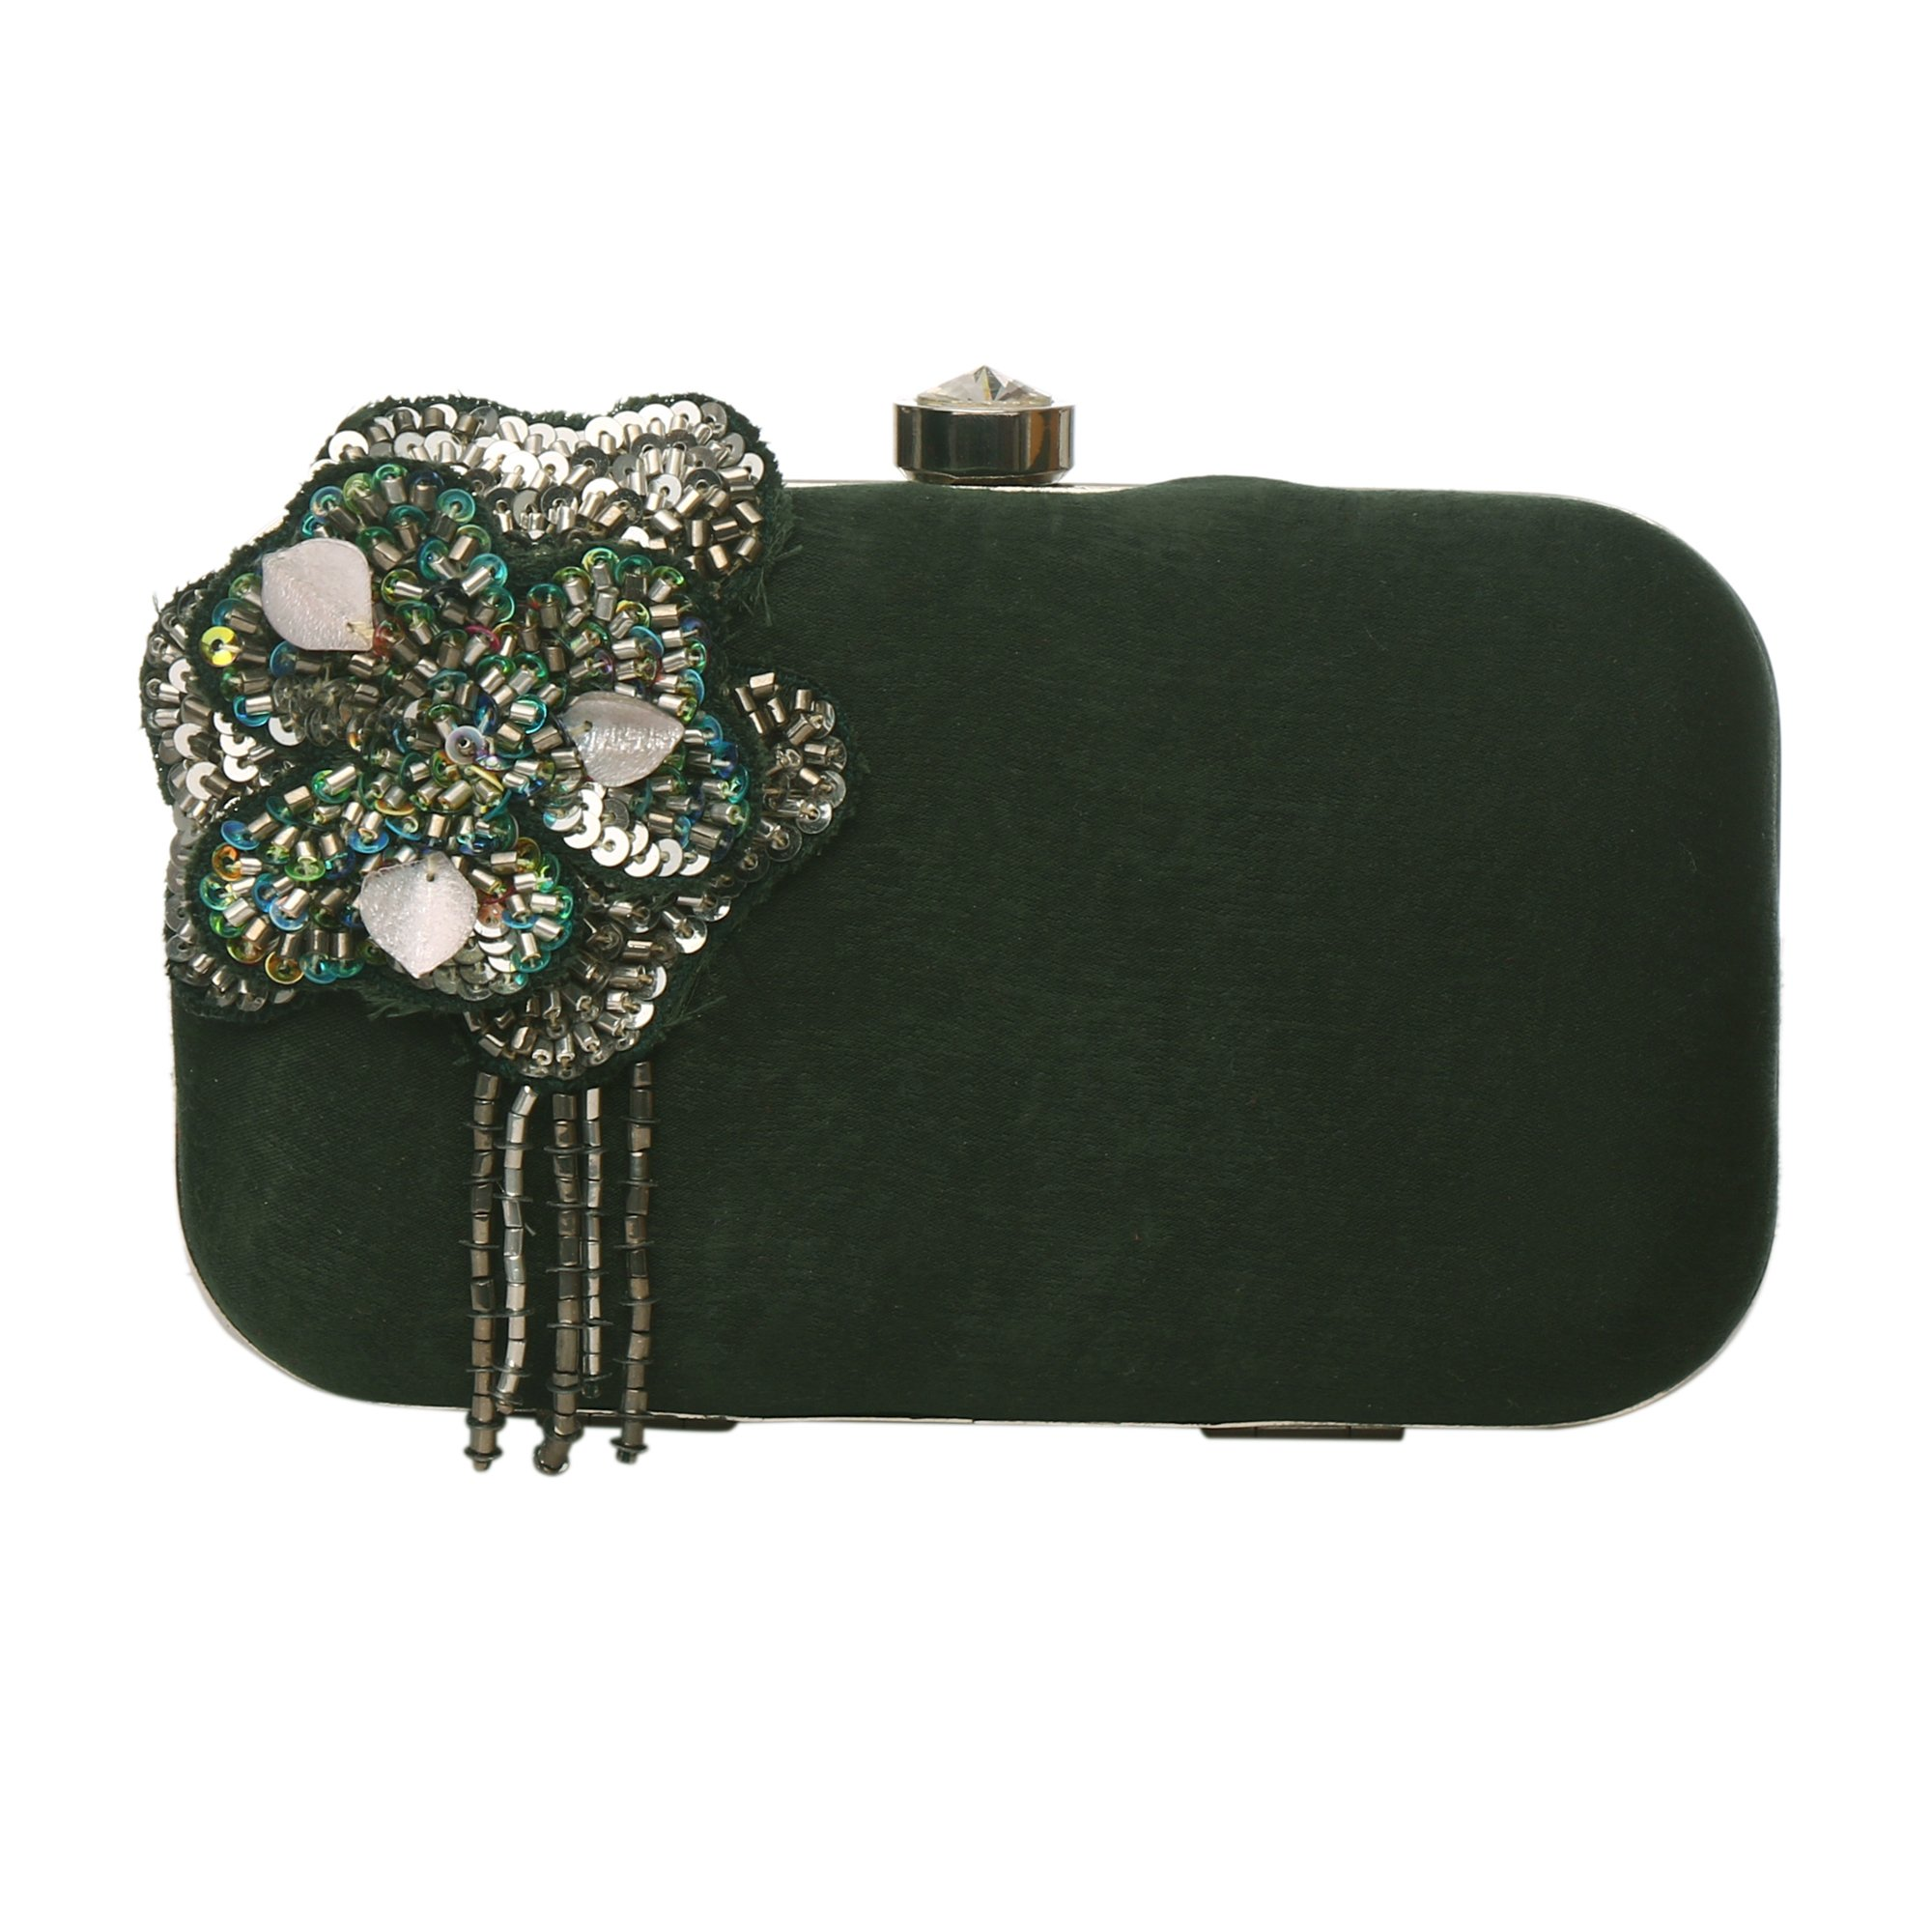 MONOKROME NEW YORK Clutches for women hardcase hand embroideredhandmade greenevening party clutch